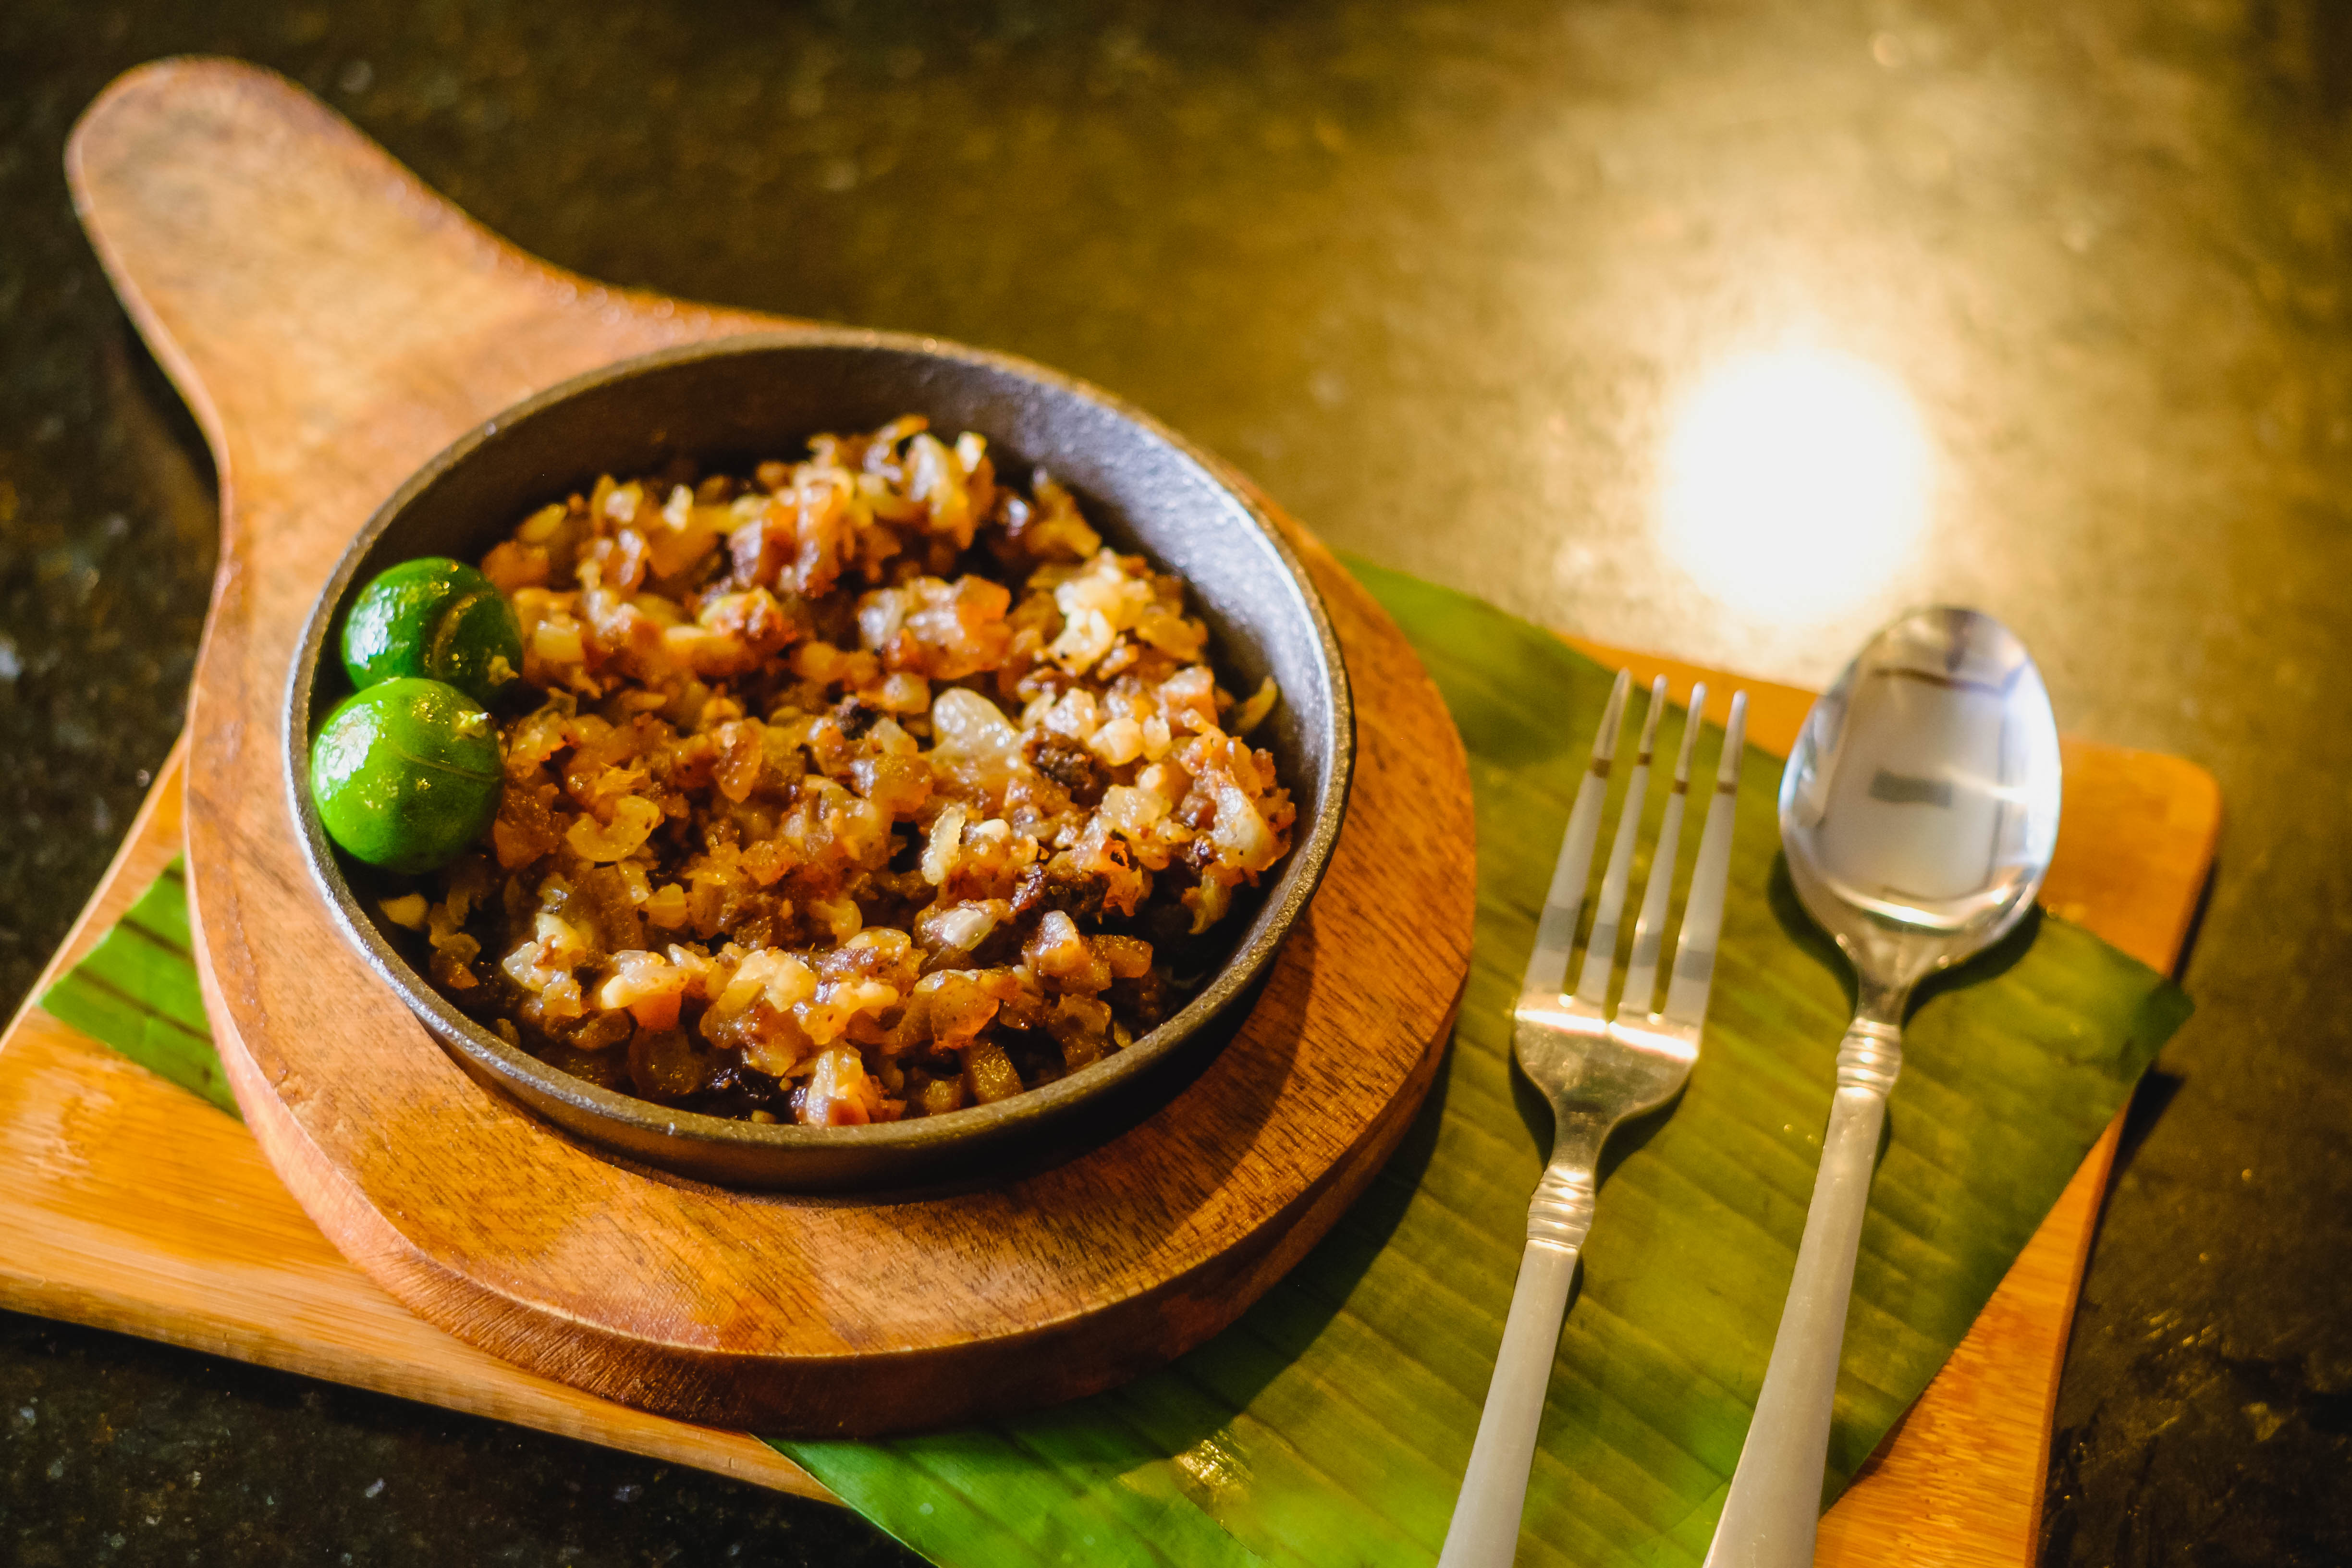 Andrew Zimmern Delicious Destinations Manila - Chopped deep fried pig face, ears, liver and meat